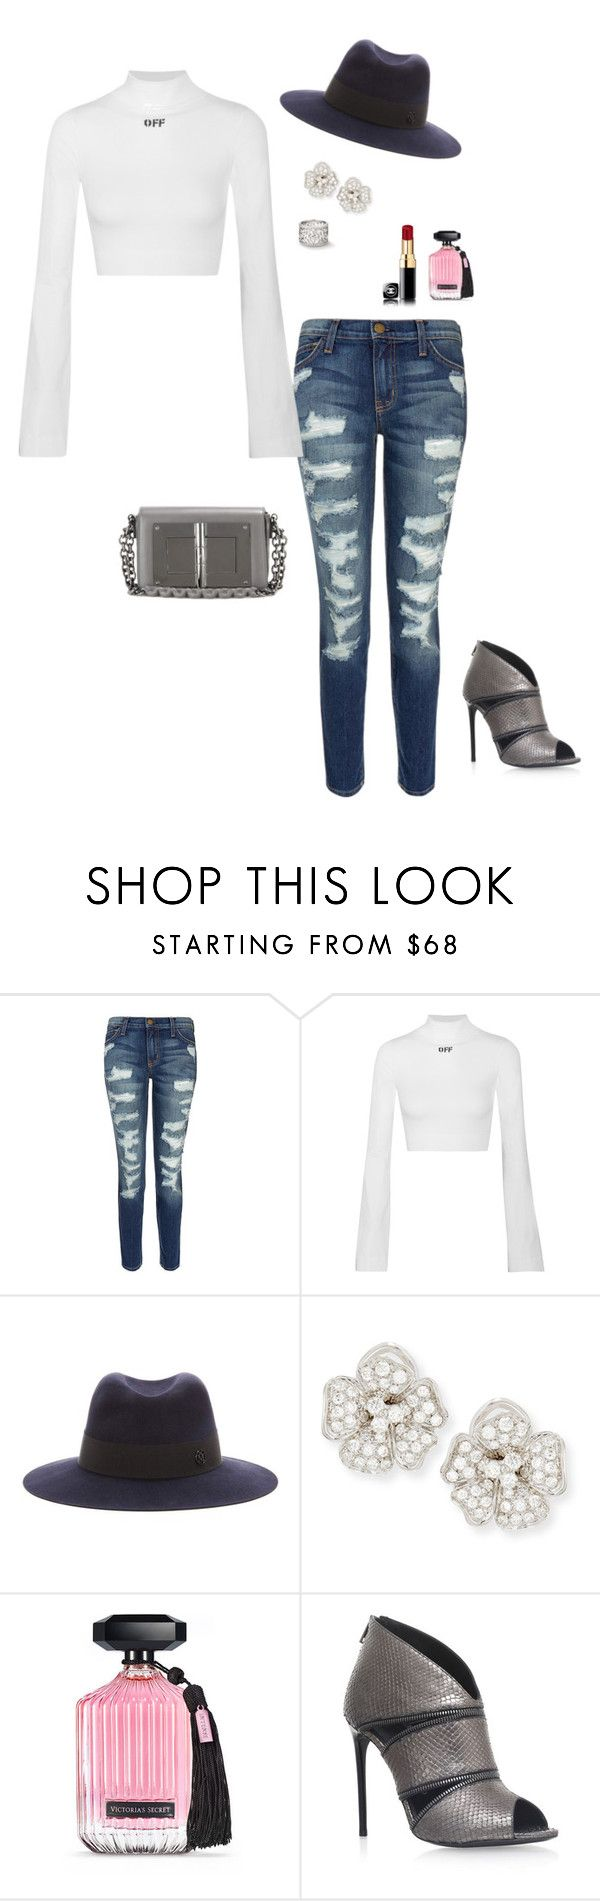 """""""Untitled #3248"""" by janglin725 ❤ liked on Polyvore featuring Current/Elliott, Off-White, Maison Michel, Leo Pizzo, Victoria's Secret and Tom Ford"""